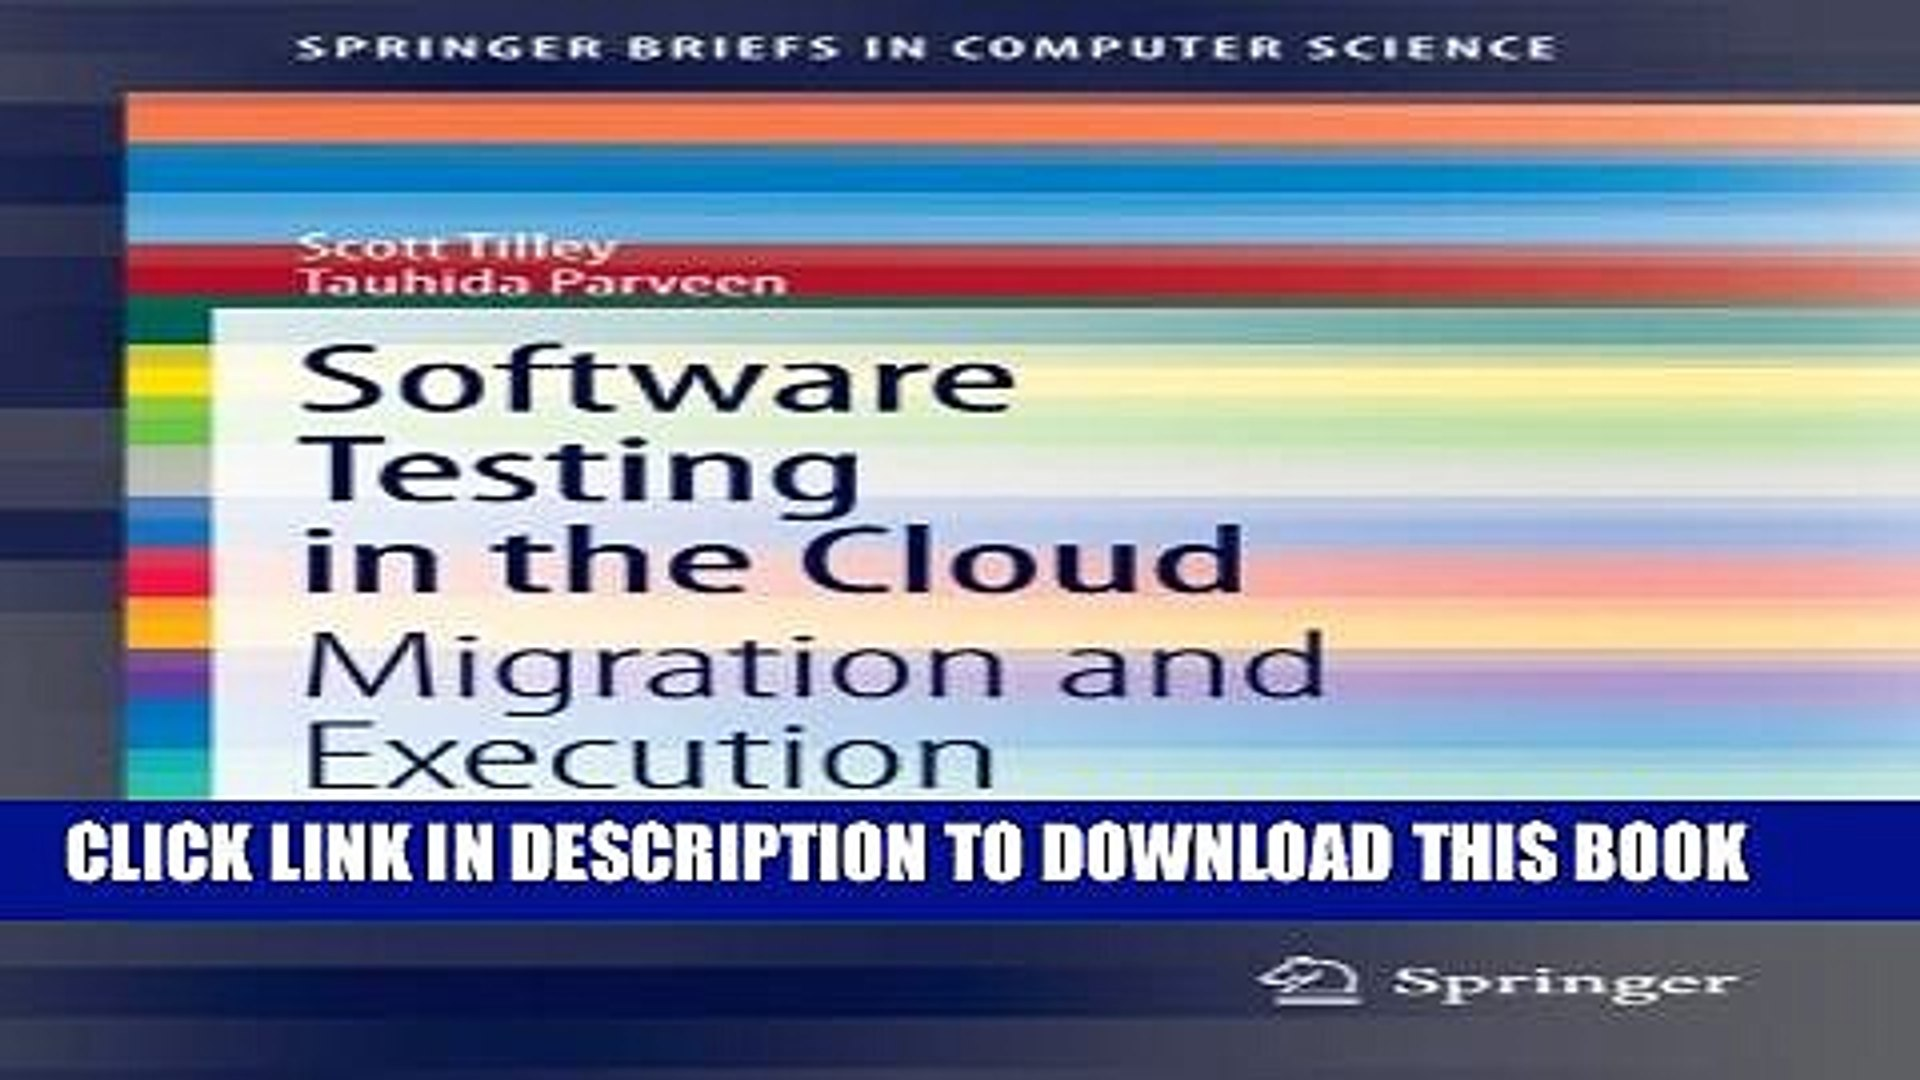 [PDF] Software Testing in the Cloud: Migration and Execution  (SpringerBriefs in Computer Science)